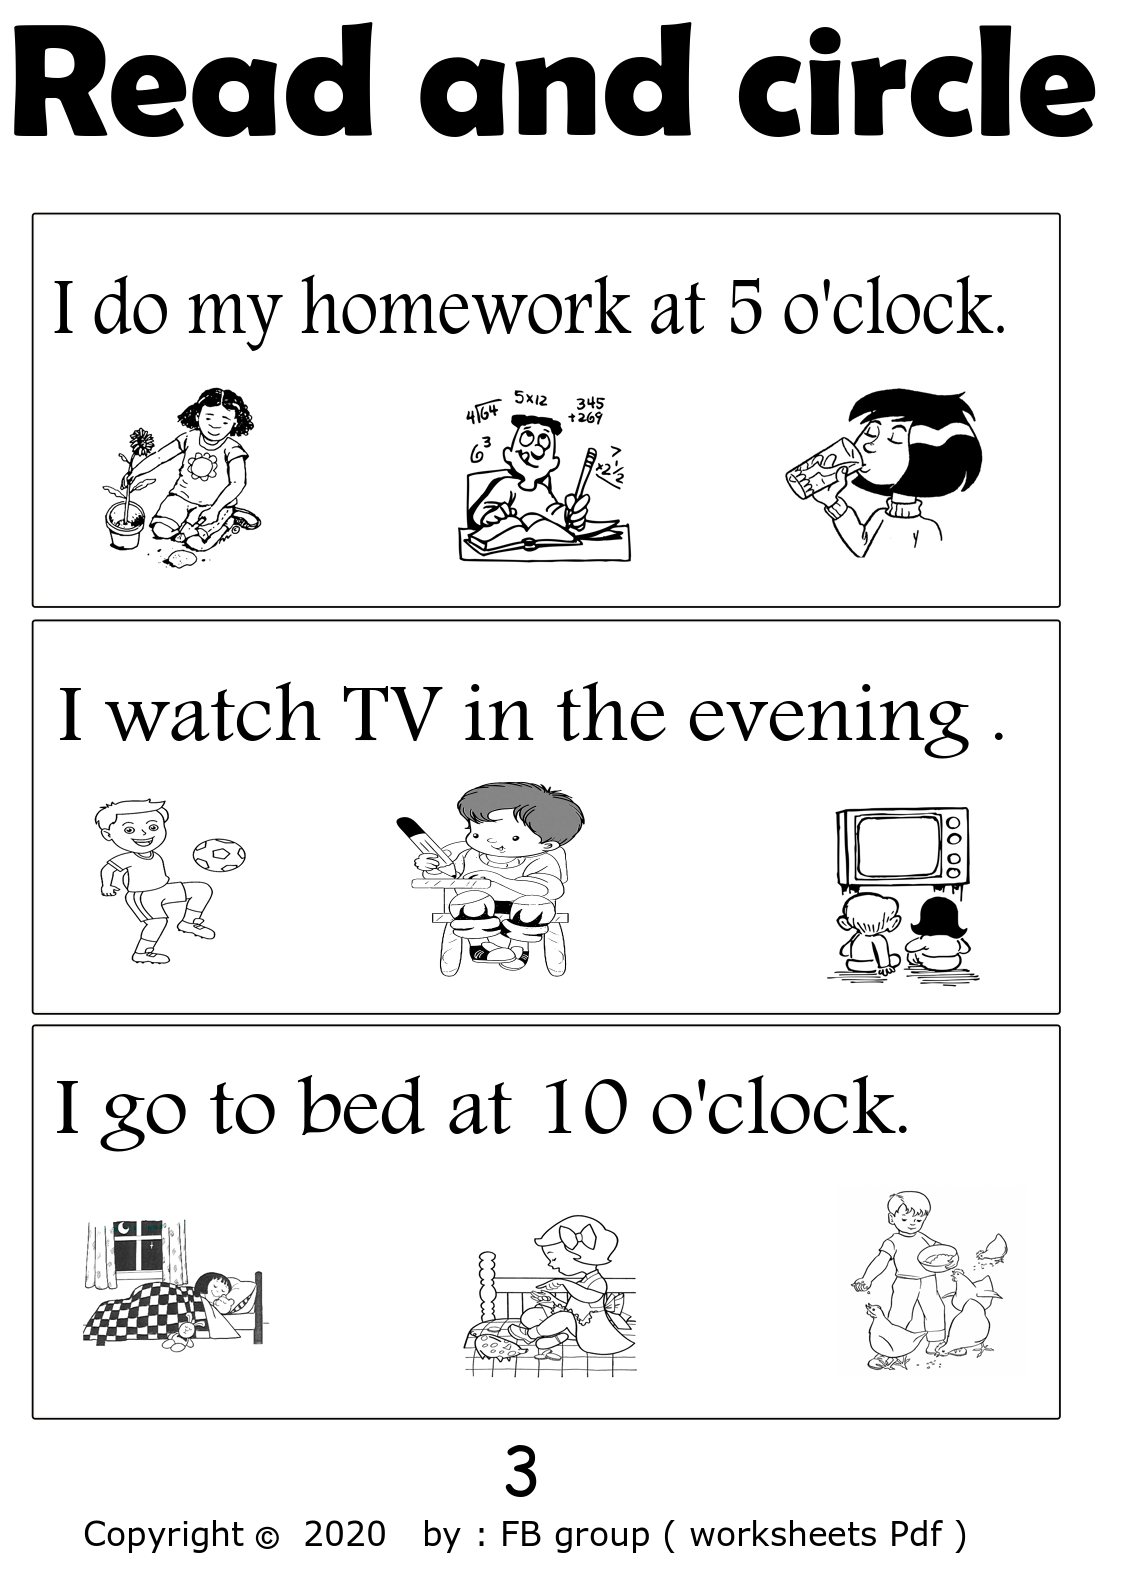 Download Read And Circle Worksheet Free File Part 3